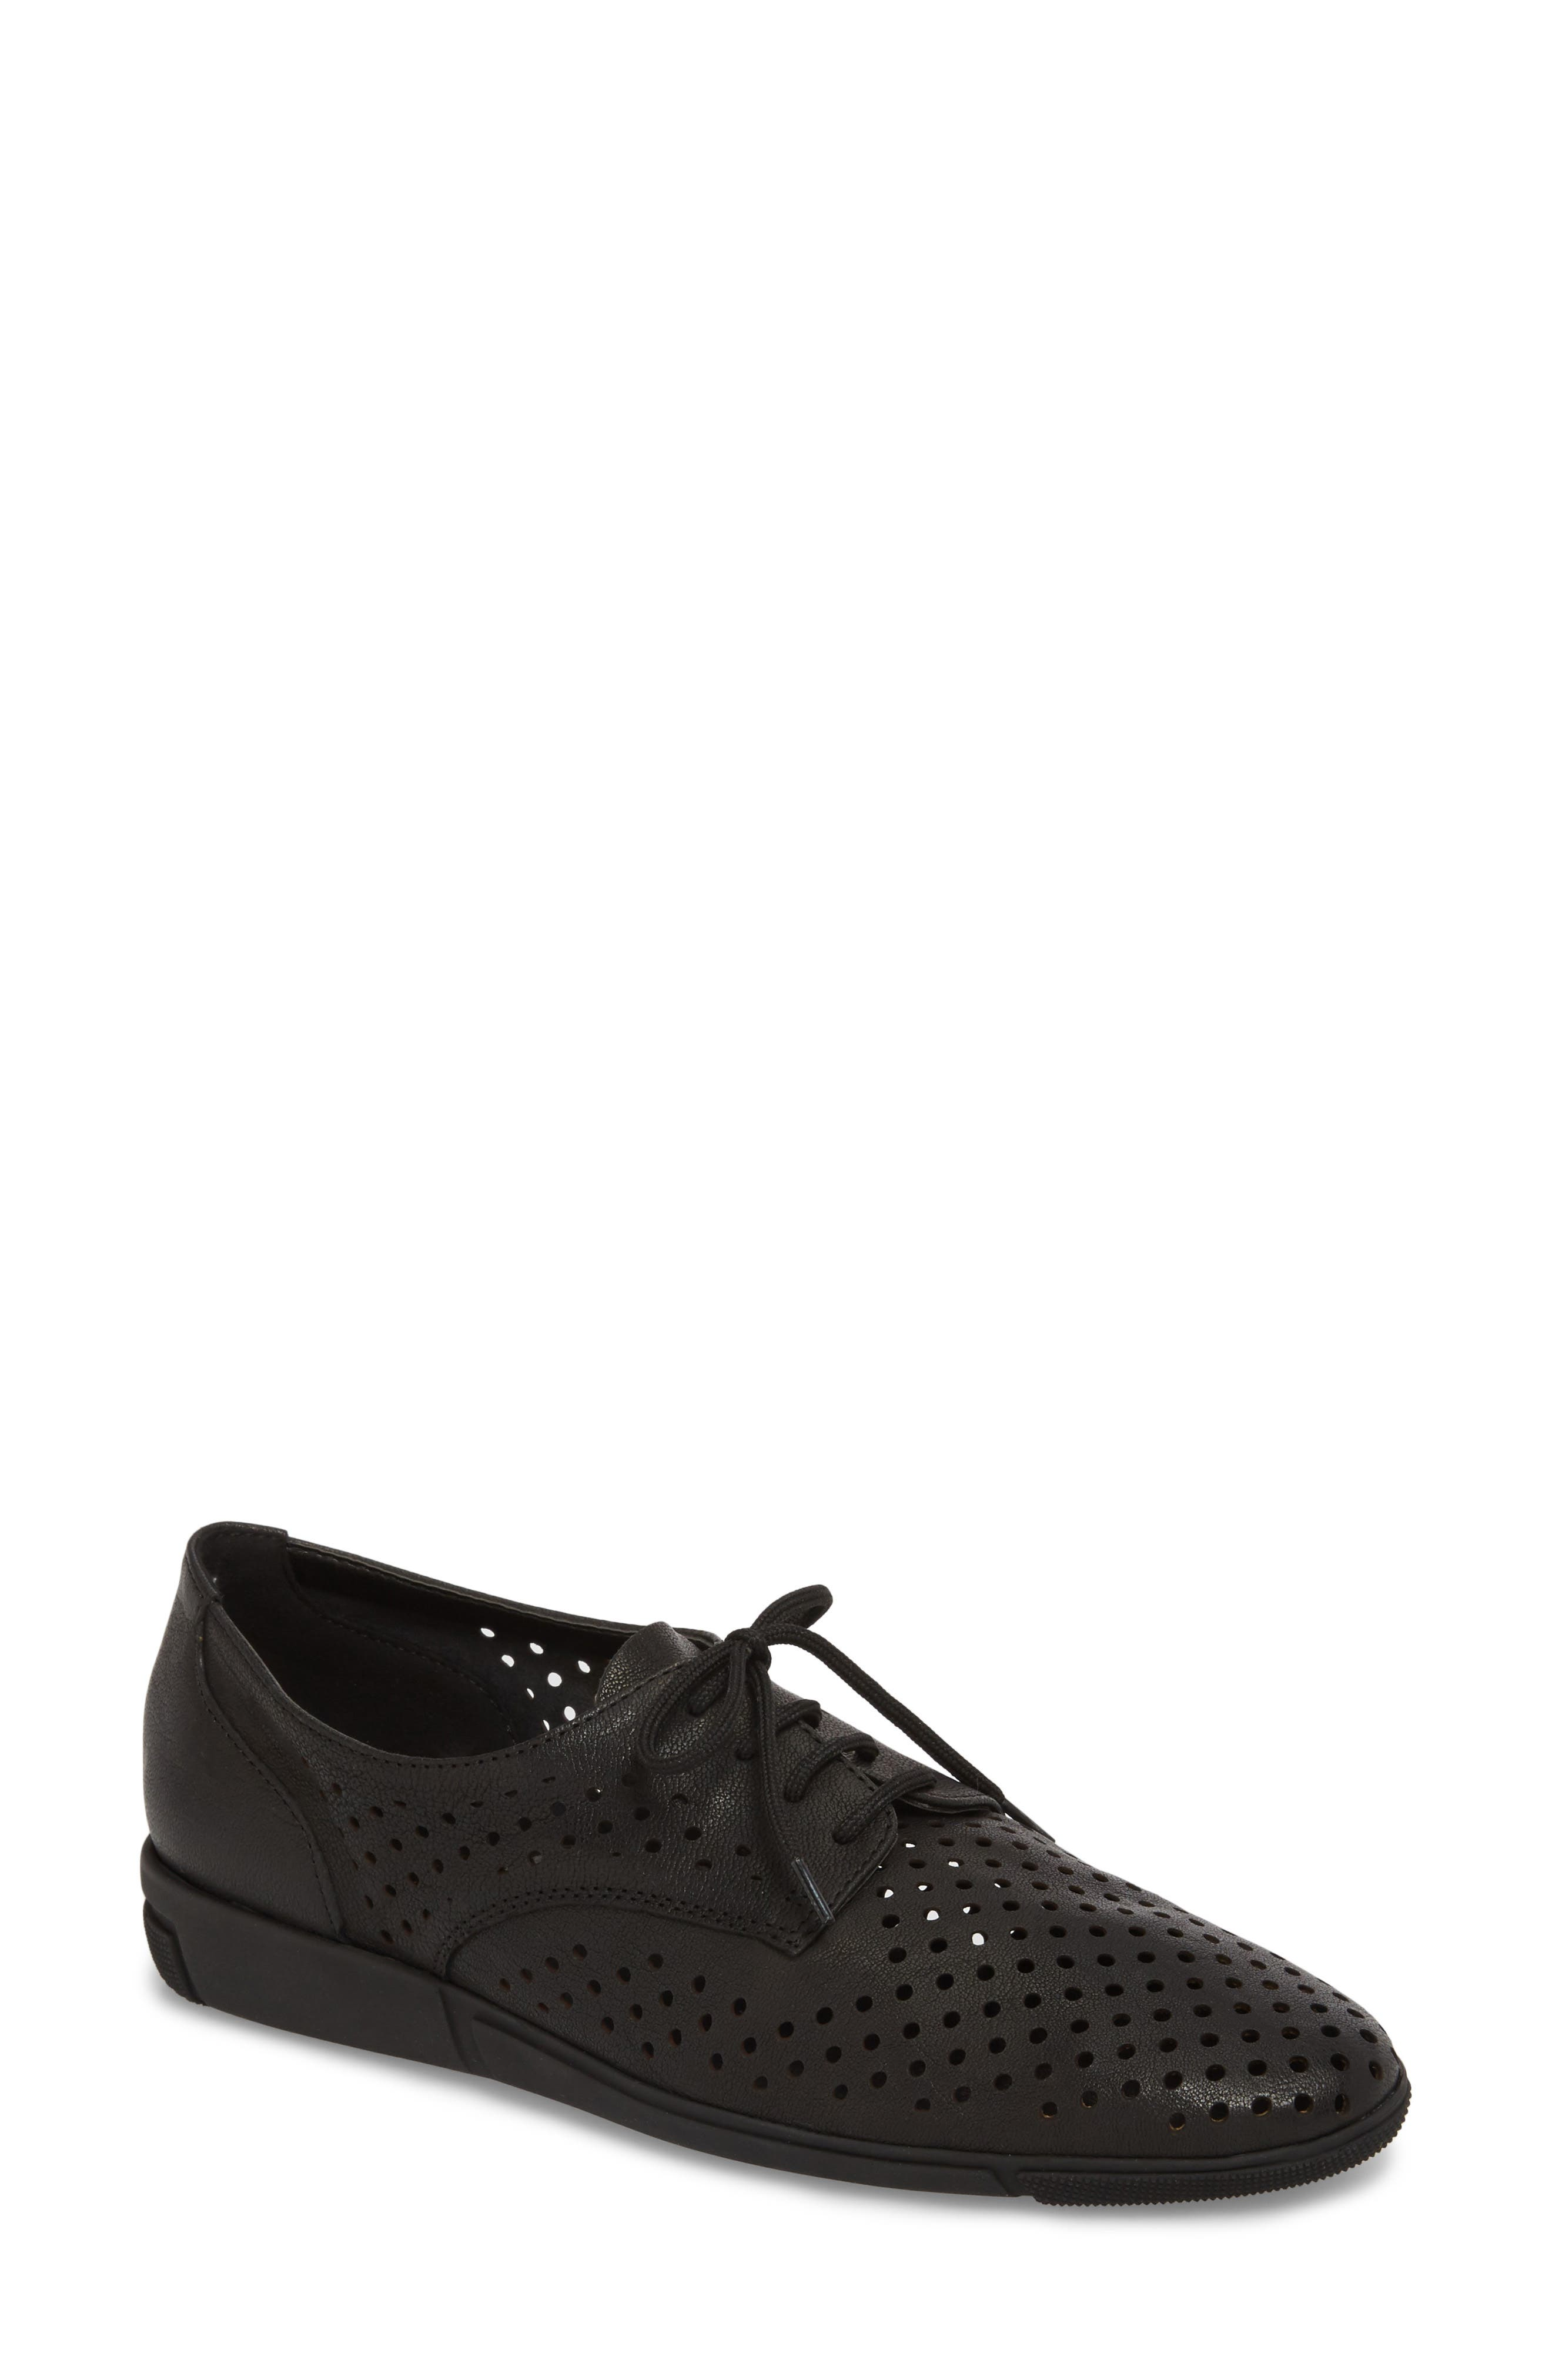 Dirce Perforated Oxford Flat,                             Main thumbnail 1, color,                             Black Leather